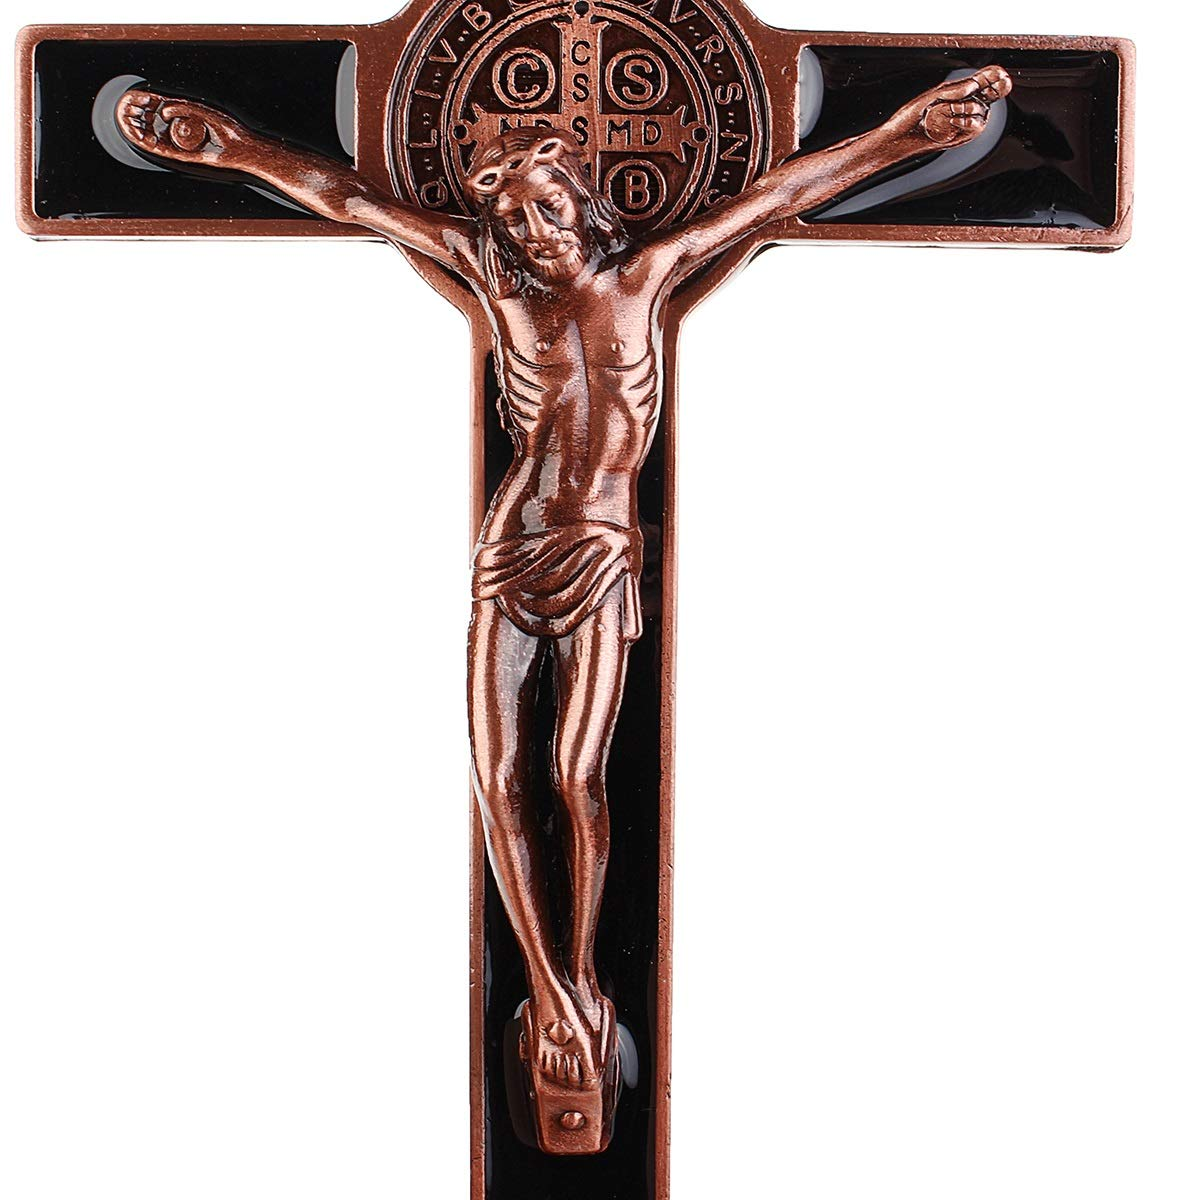 YUNGYE Church Relics Wall Crosses Crucifix Jesus On The Stand Cross Wall Crucifix Antique Home Chapel Decoration 20cm